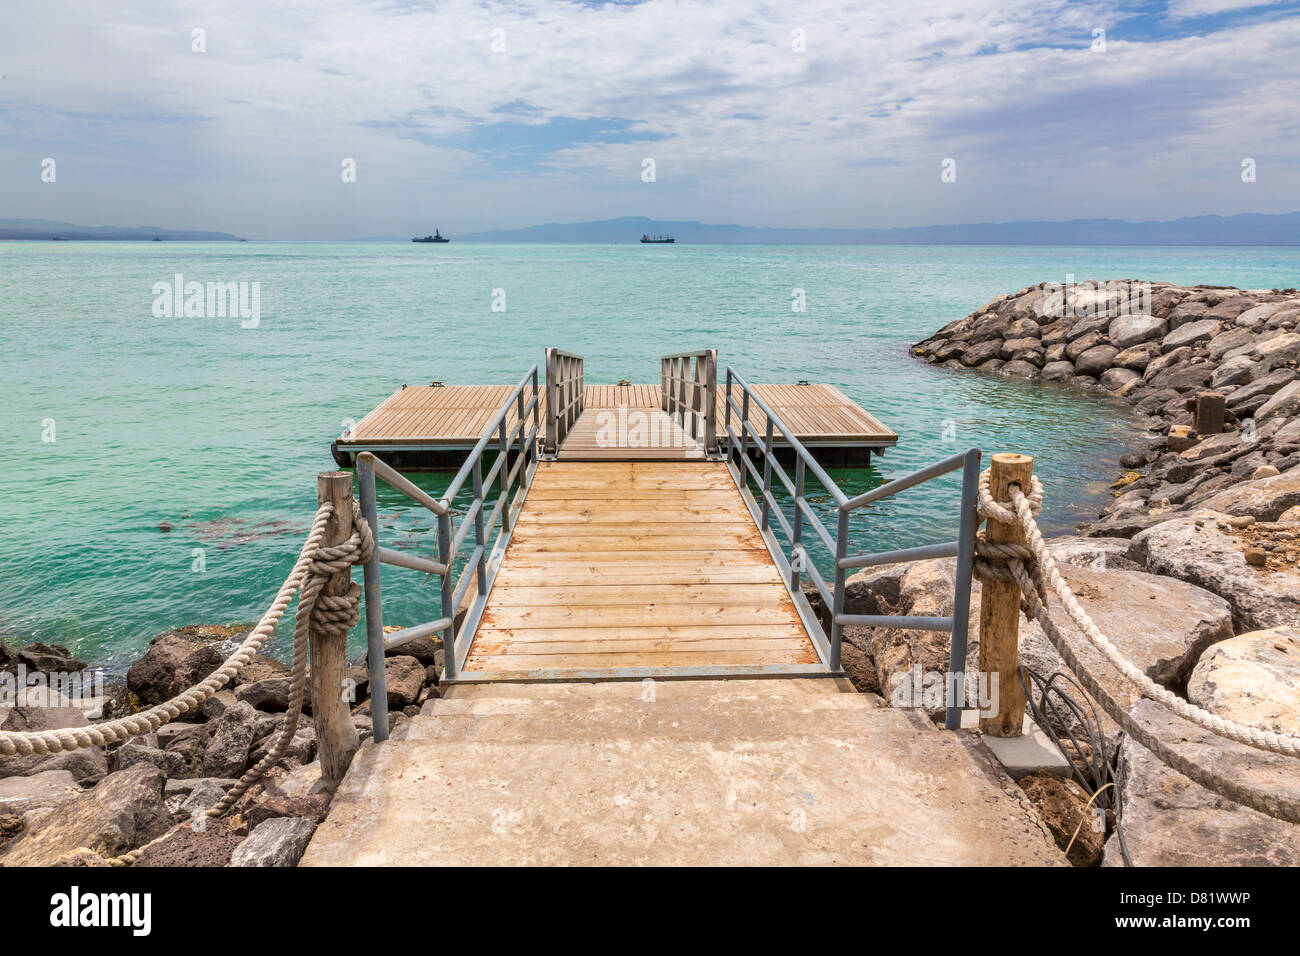 A wooden deck with metal railing on the shores of the Red sea - Stock Image